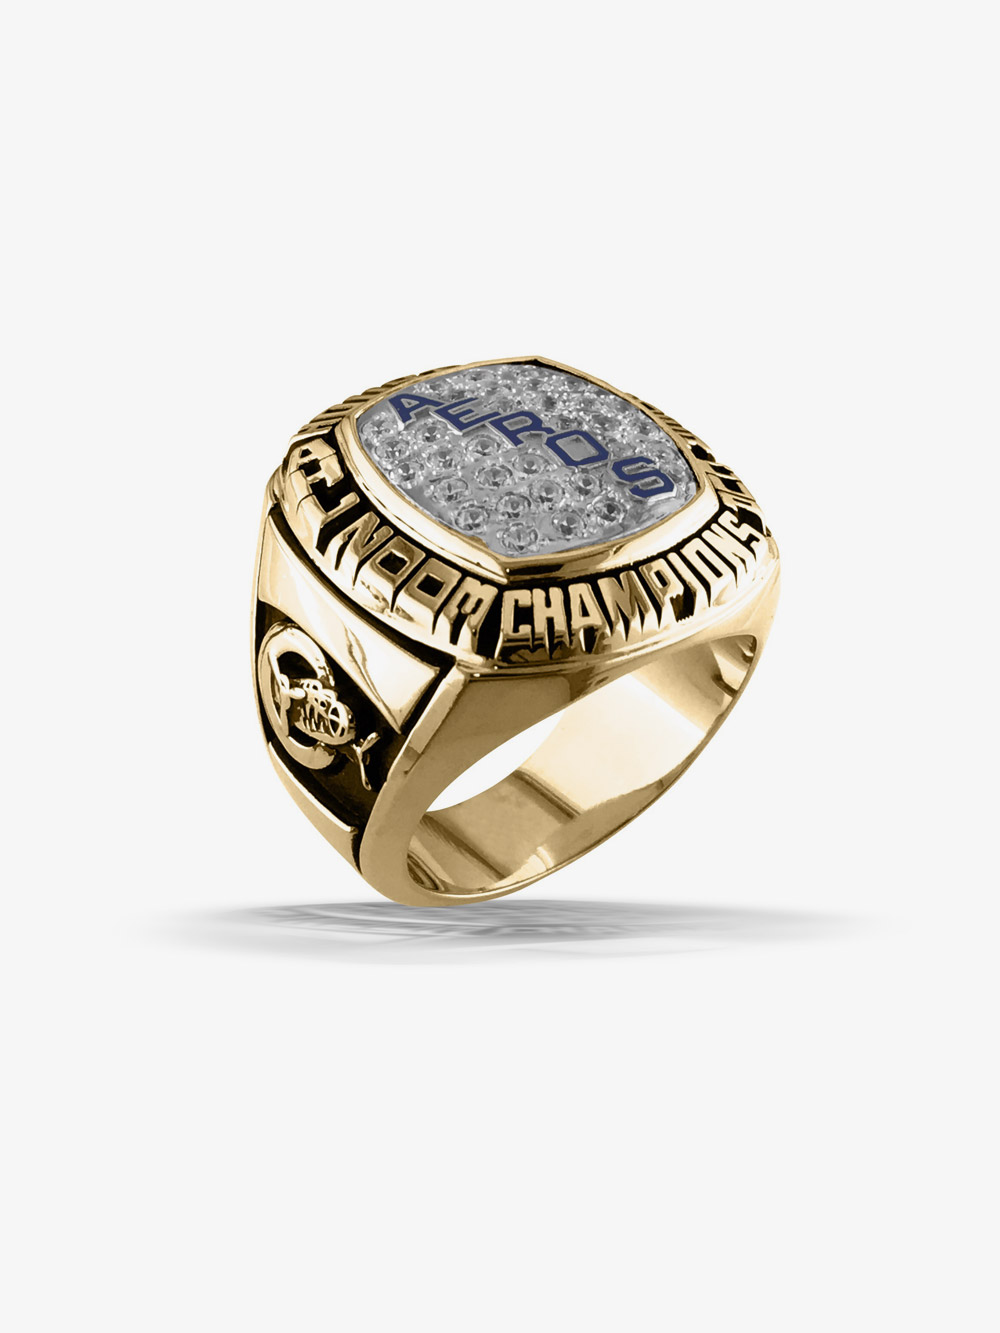 Example of Client Championship Ring